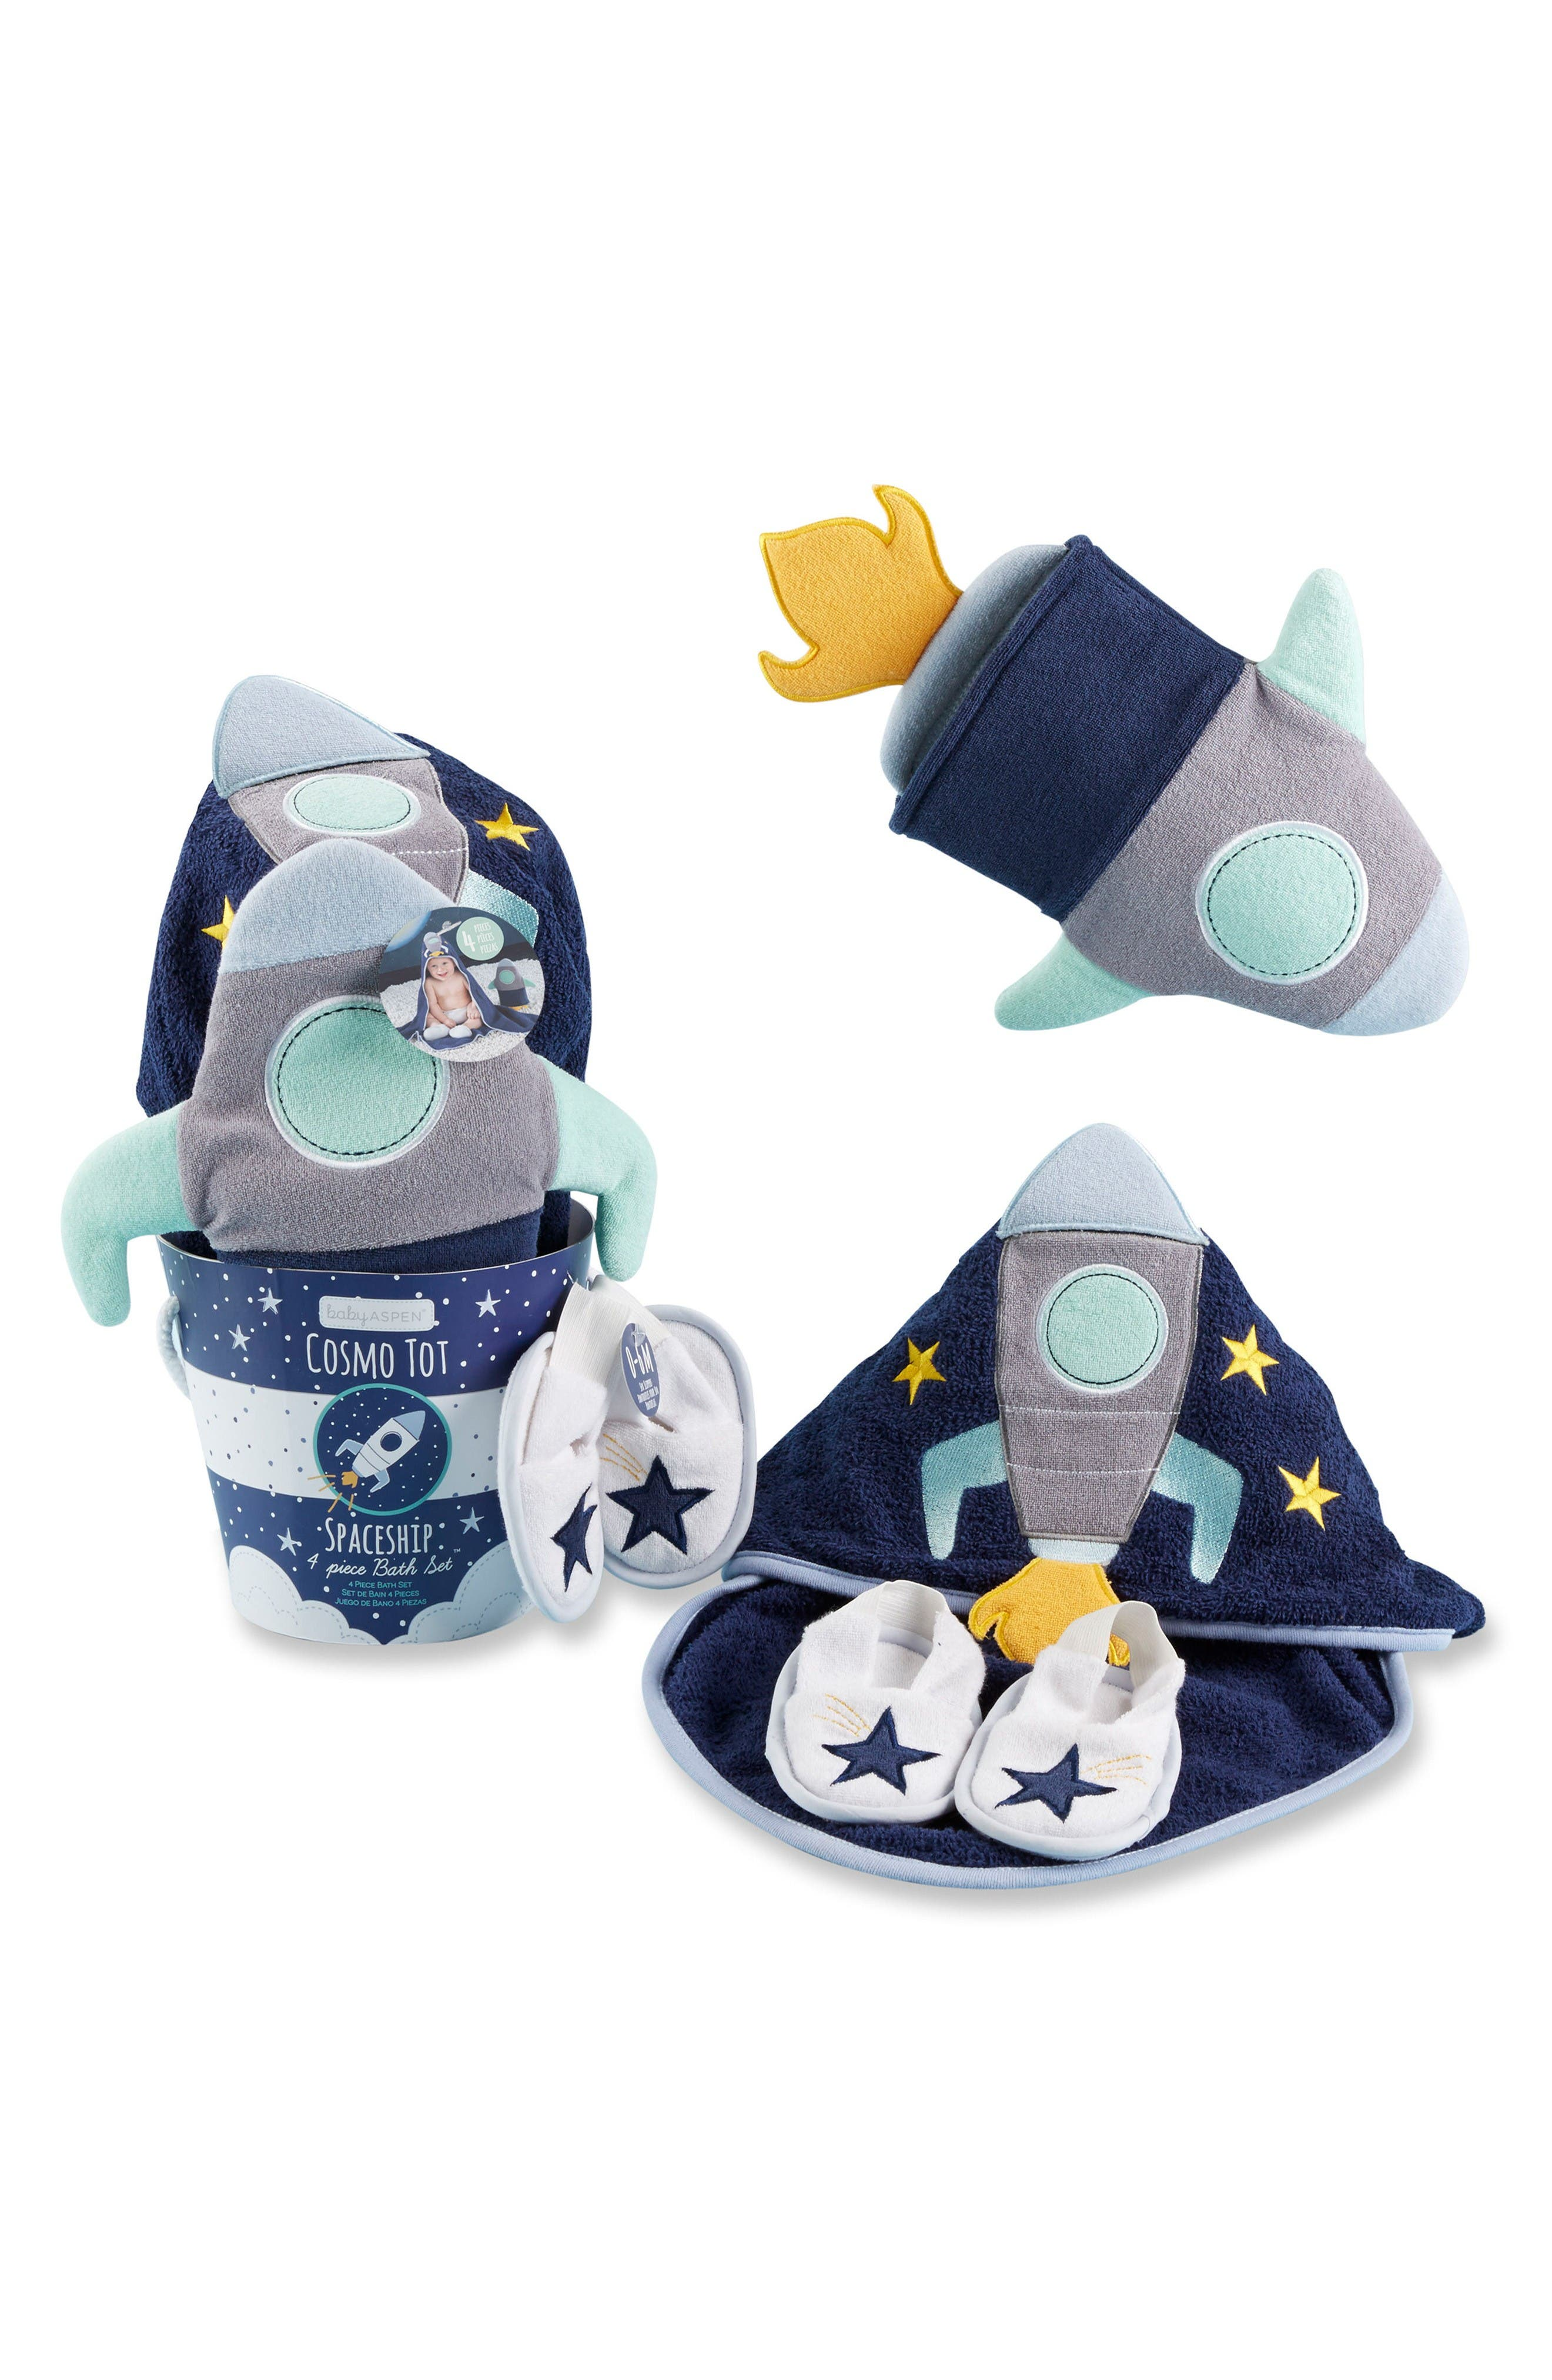 Cosmo Tot 4-Piece Bath Gift Set,                         Main,                         color, Blue/ Yellow/ Mint